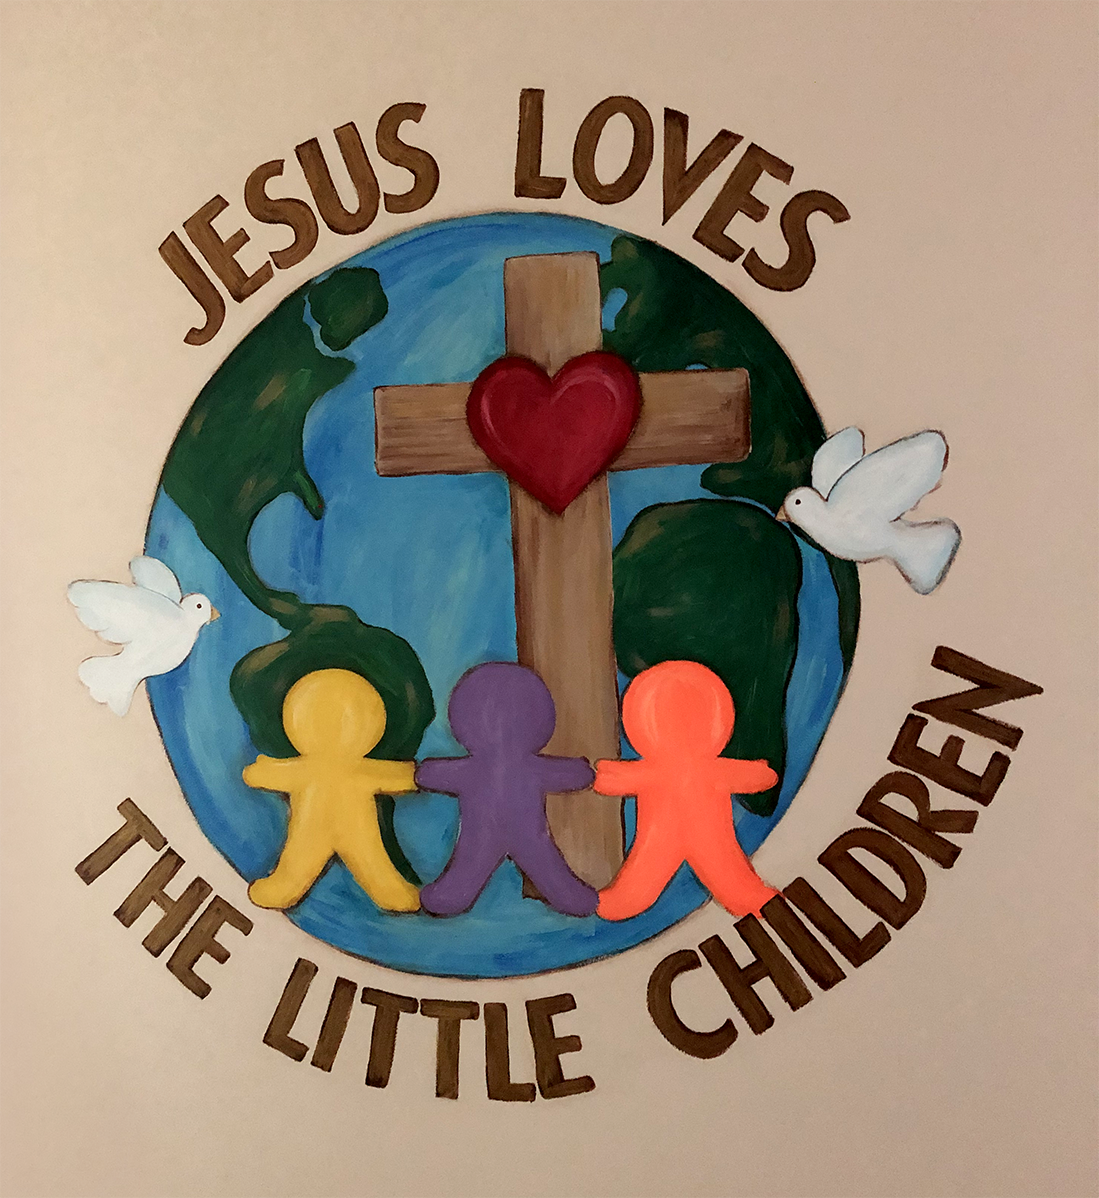 holycross-jesus-loves-children-mural_medium